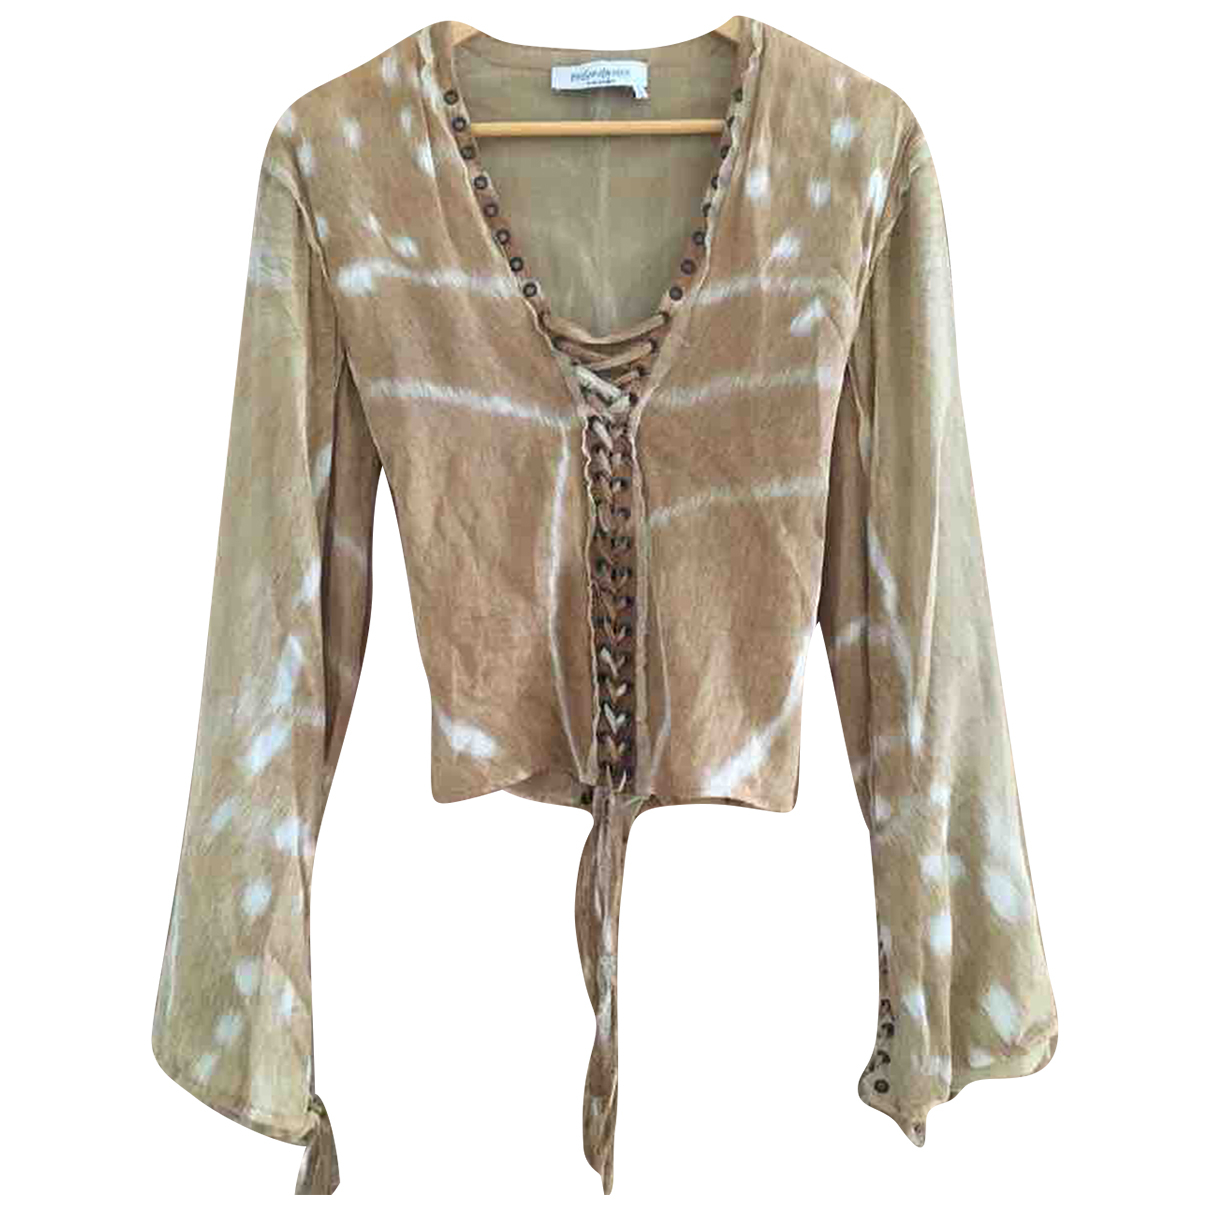 Yves Saint Laurent \N Beige  top for Women S International